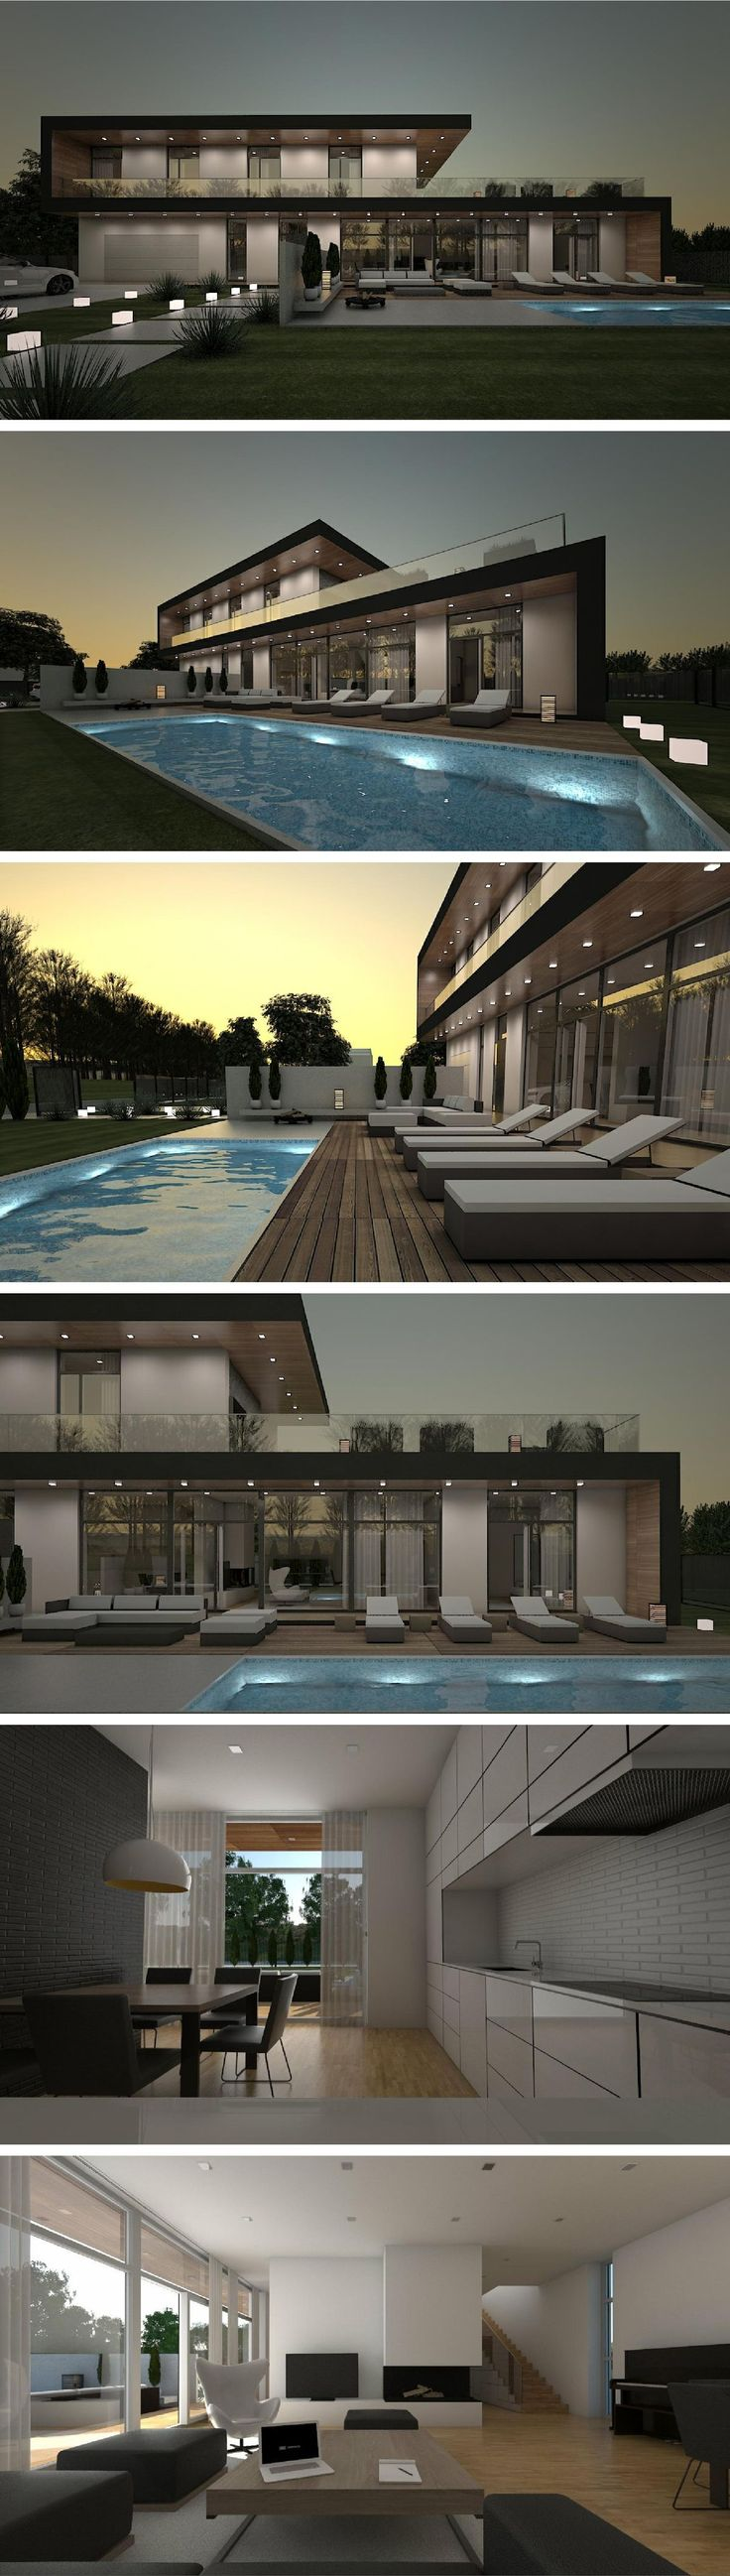 424 best Architecture images on Pinterest Modern houses Modern